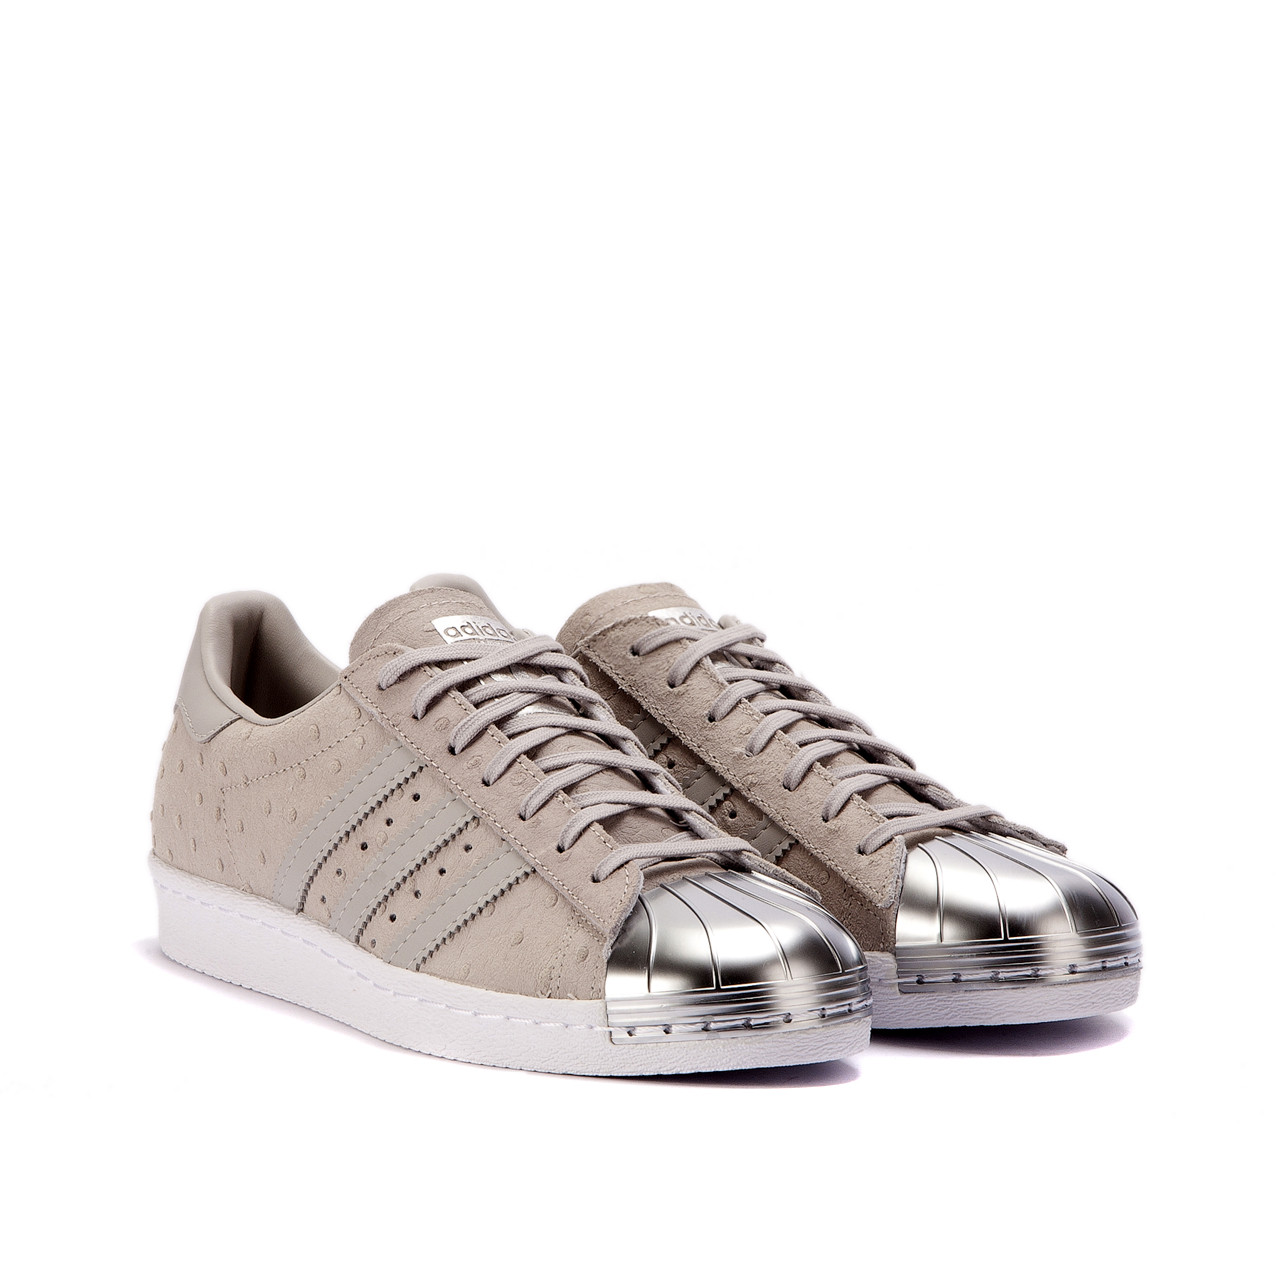 "adidas Superstar 80s W ""Metal Toe"" (Grey) S76711"